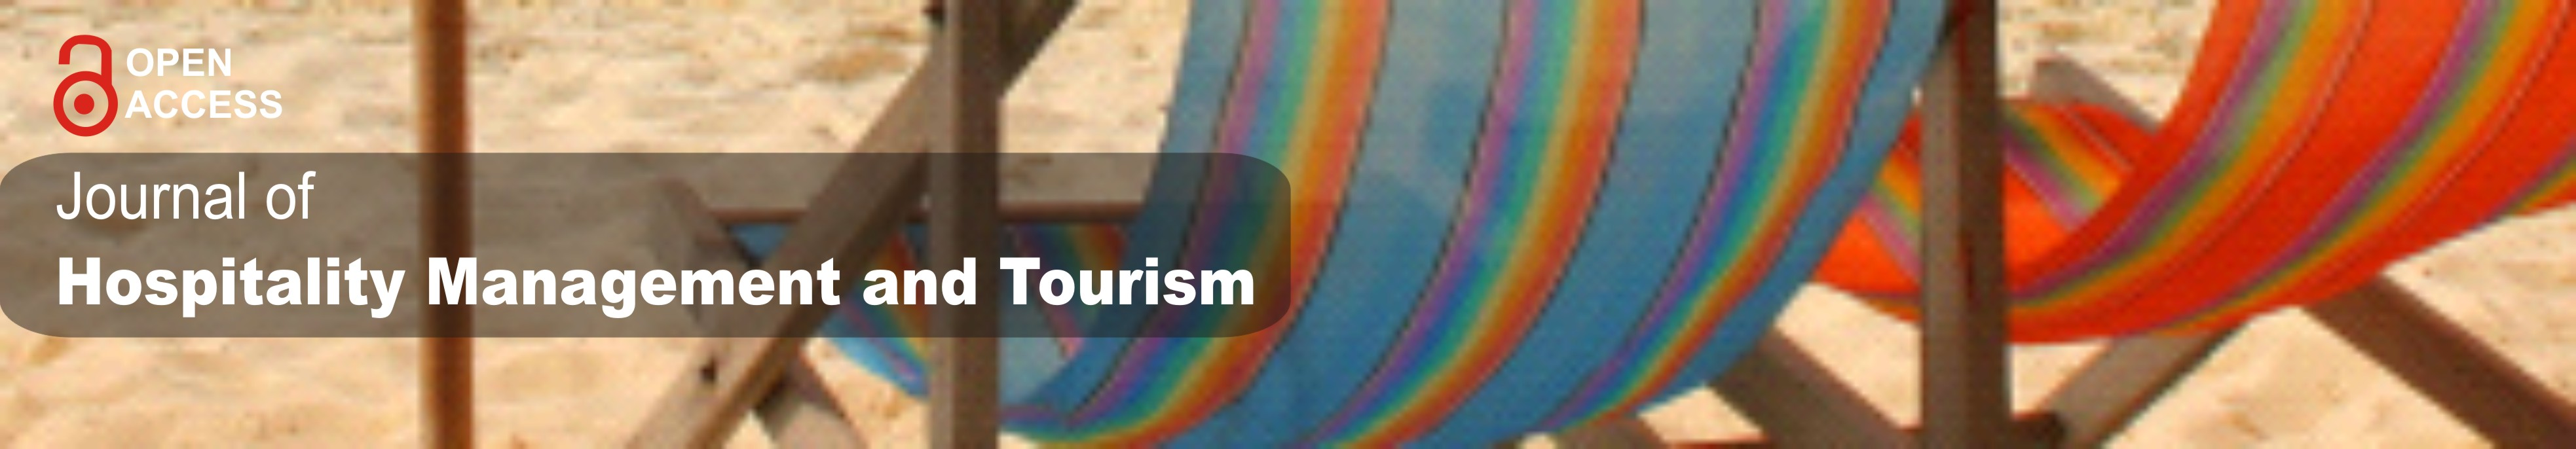 Journal of Hospitality Management and Tourism